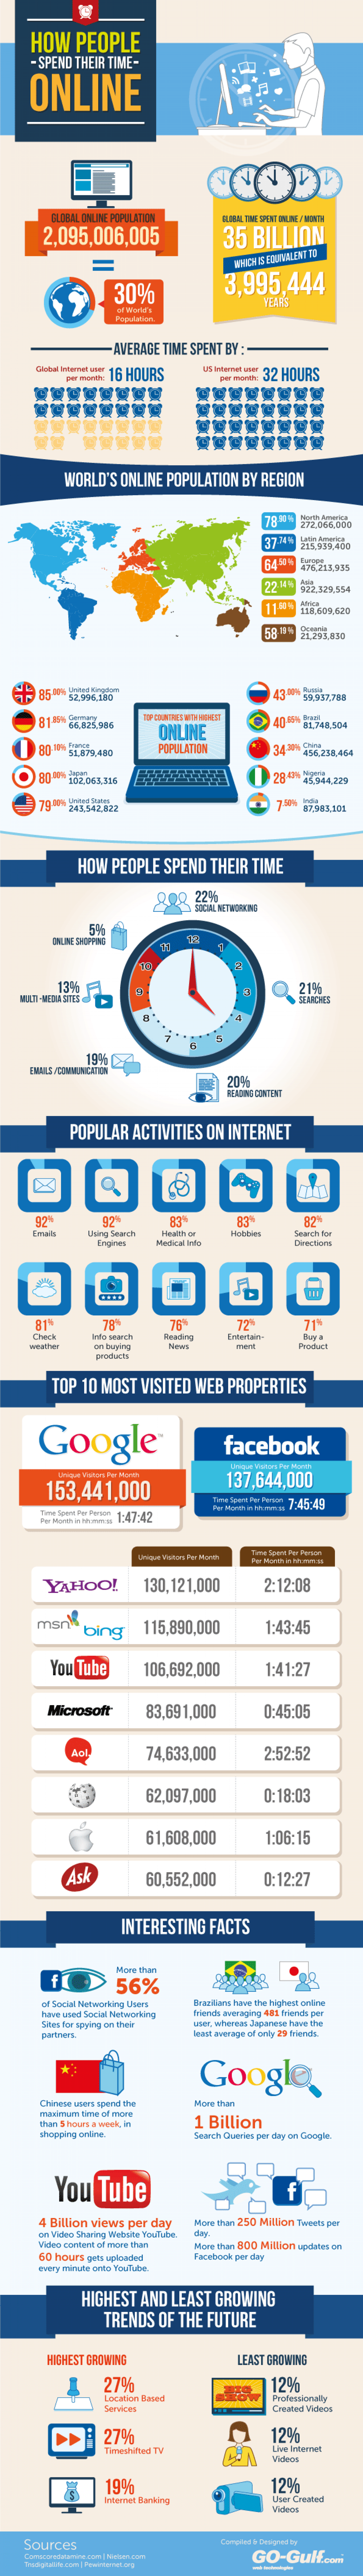 How People Spend Their Time Online Infographic